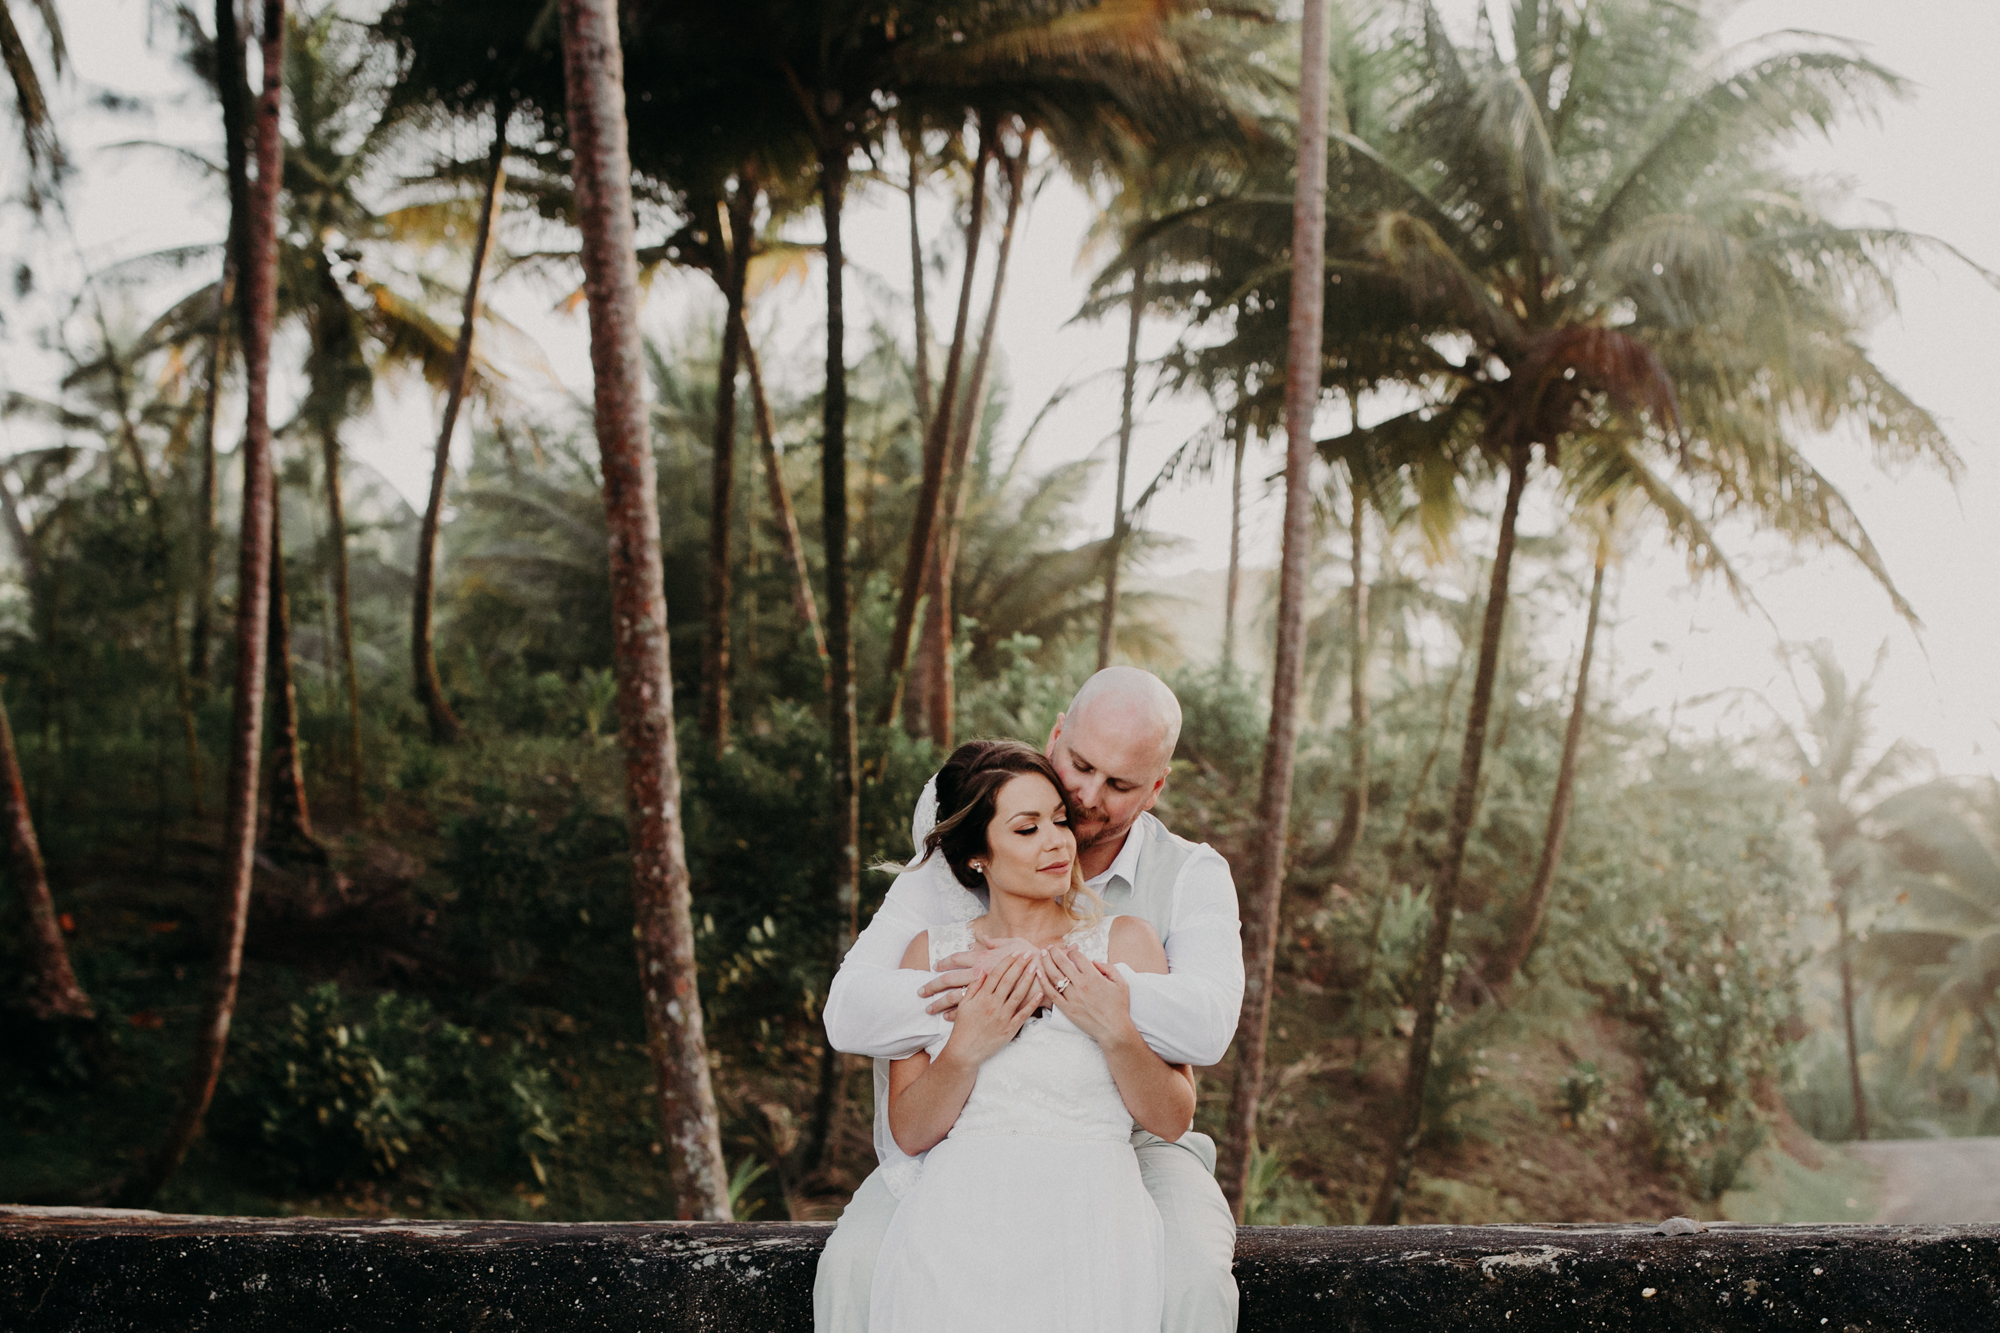 Tropical location of bride and groom